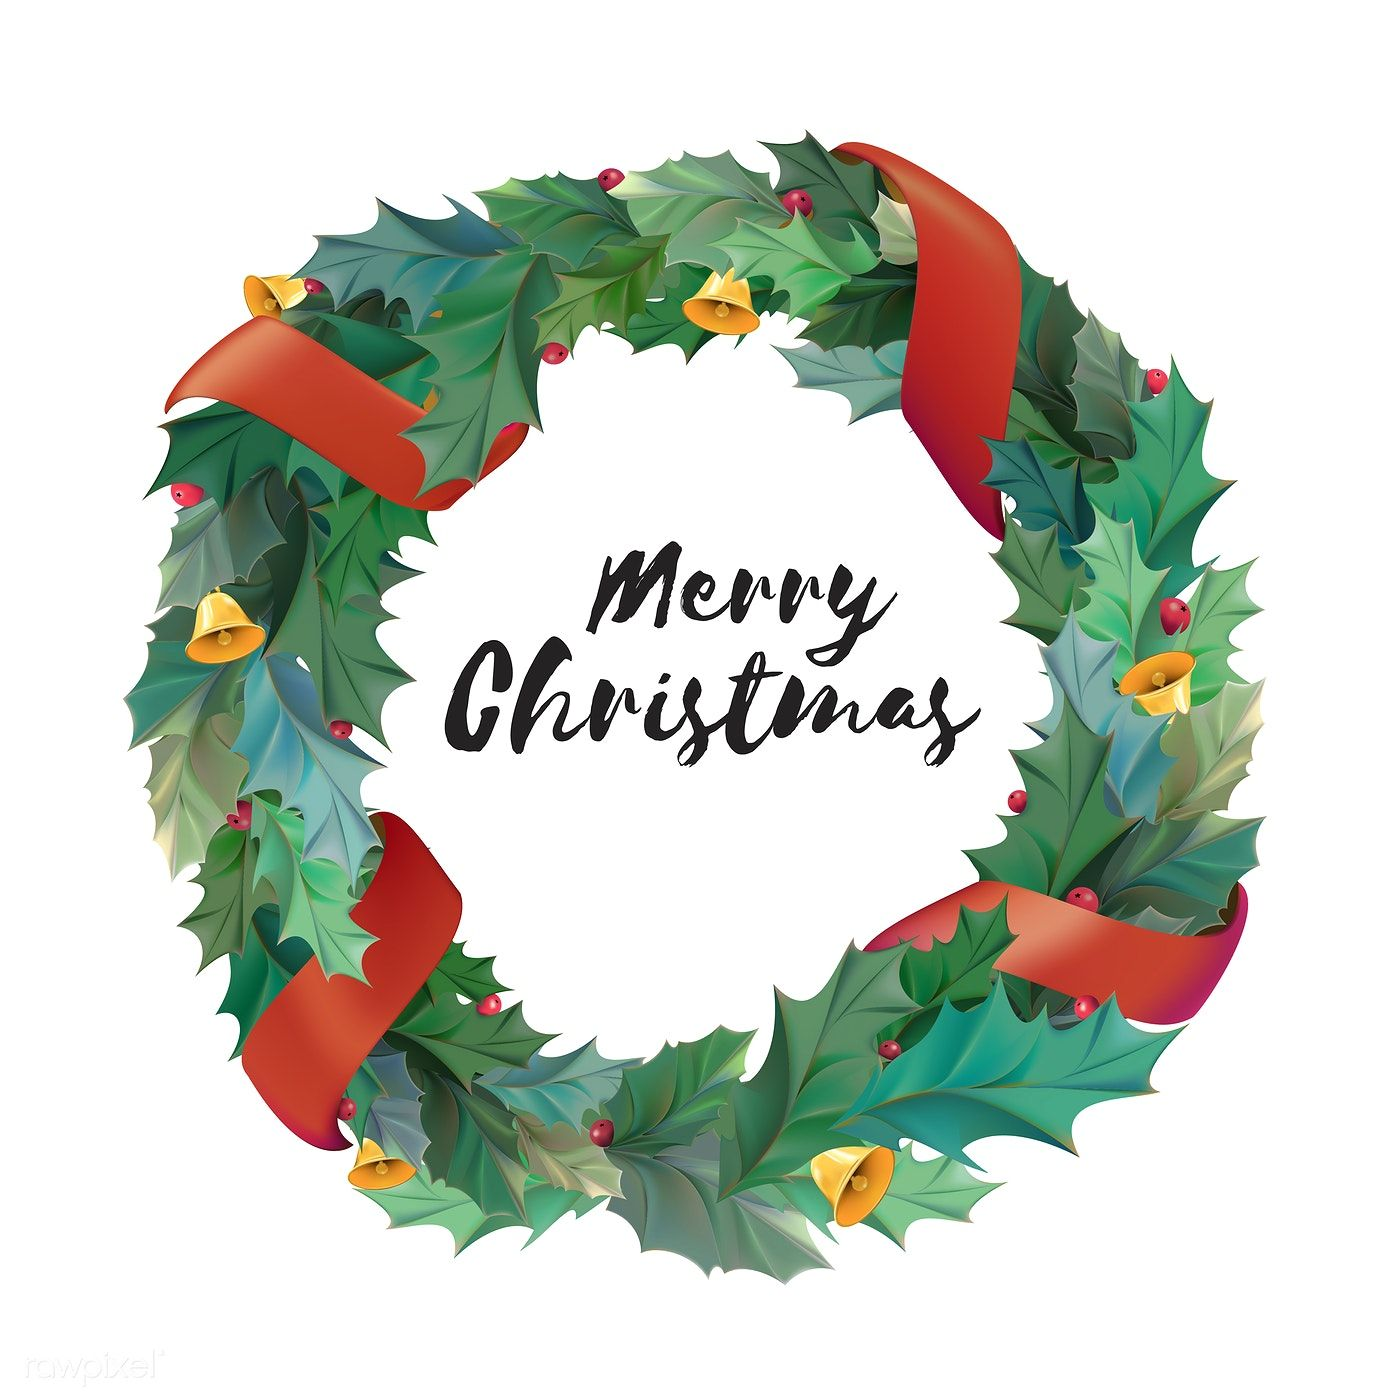 Illustration of Christmas wreath icon free image by